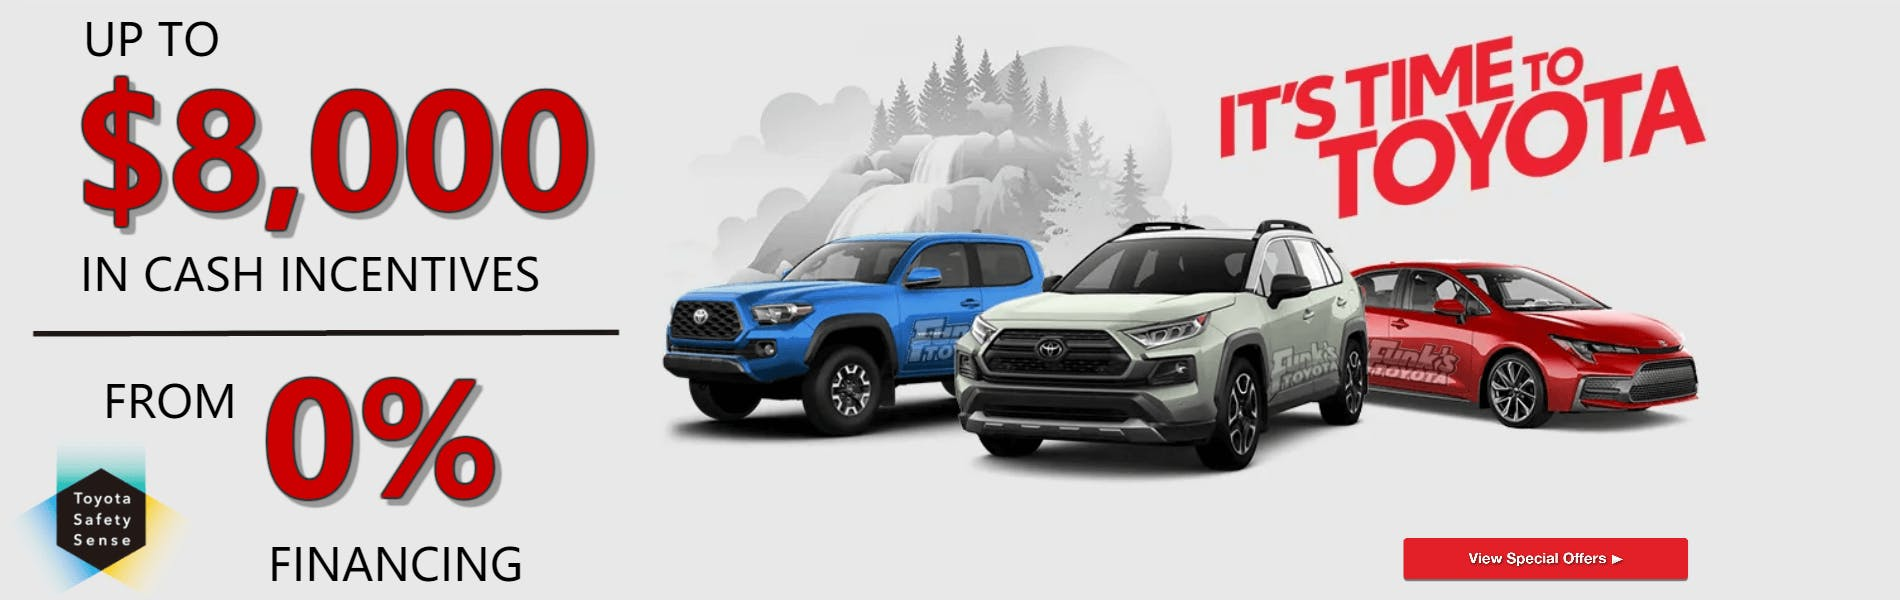 Toyota Financing Deals >> It S Time To Toyota Event